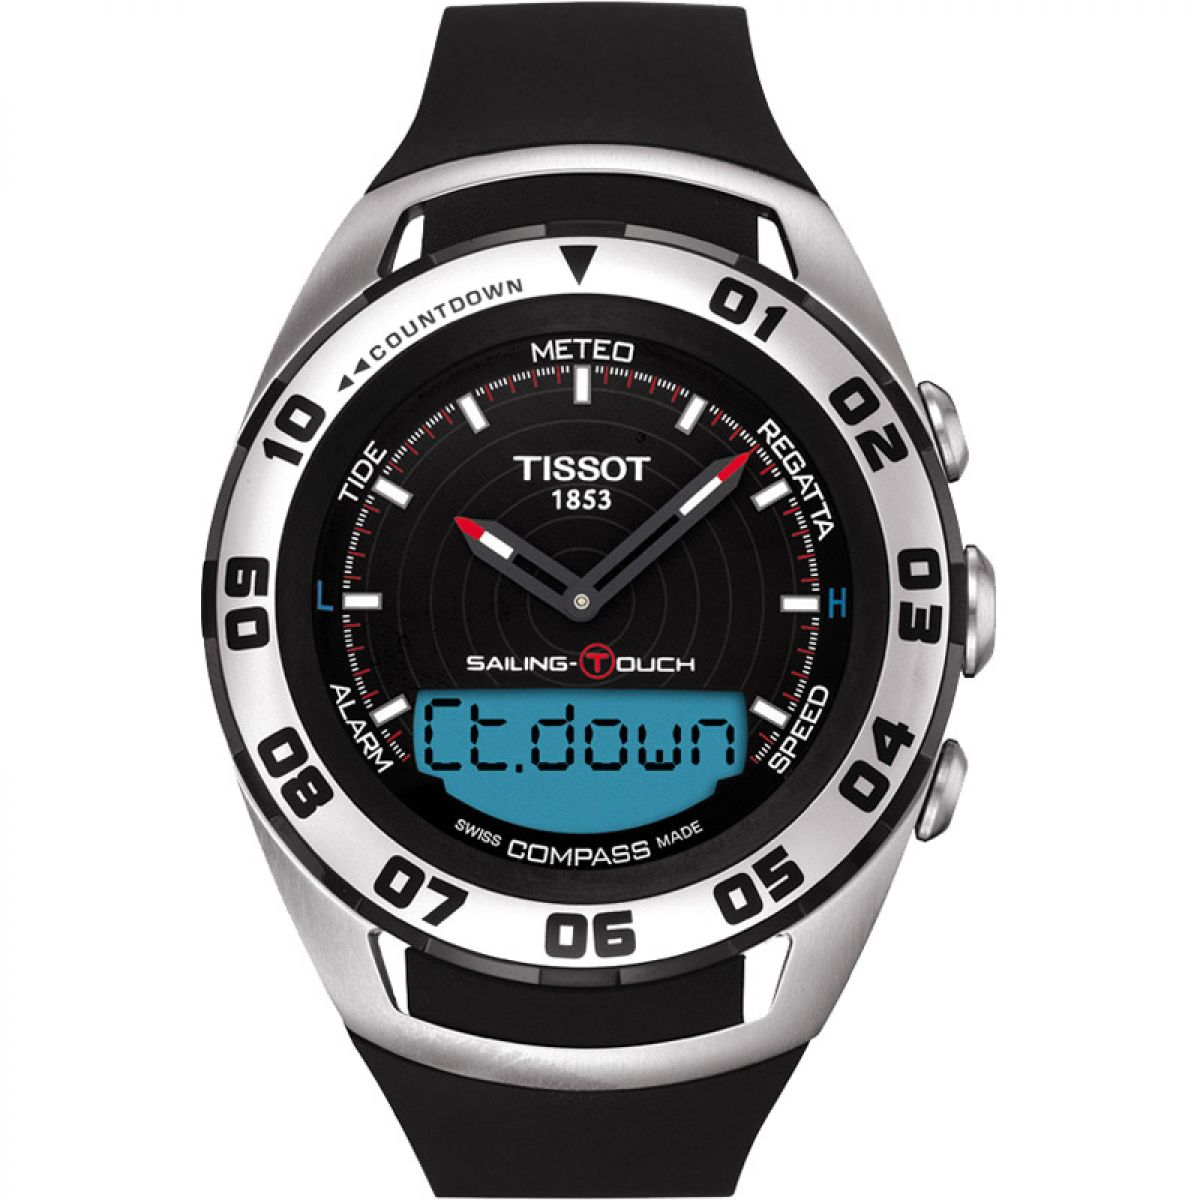 gents tissot sailing touch alarm chronograph watch t0564202705101 rh watchshop com tissot racing touch user manual tissot racing touch user manual